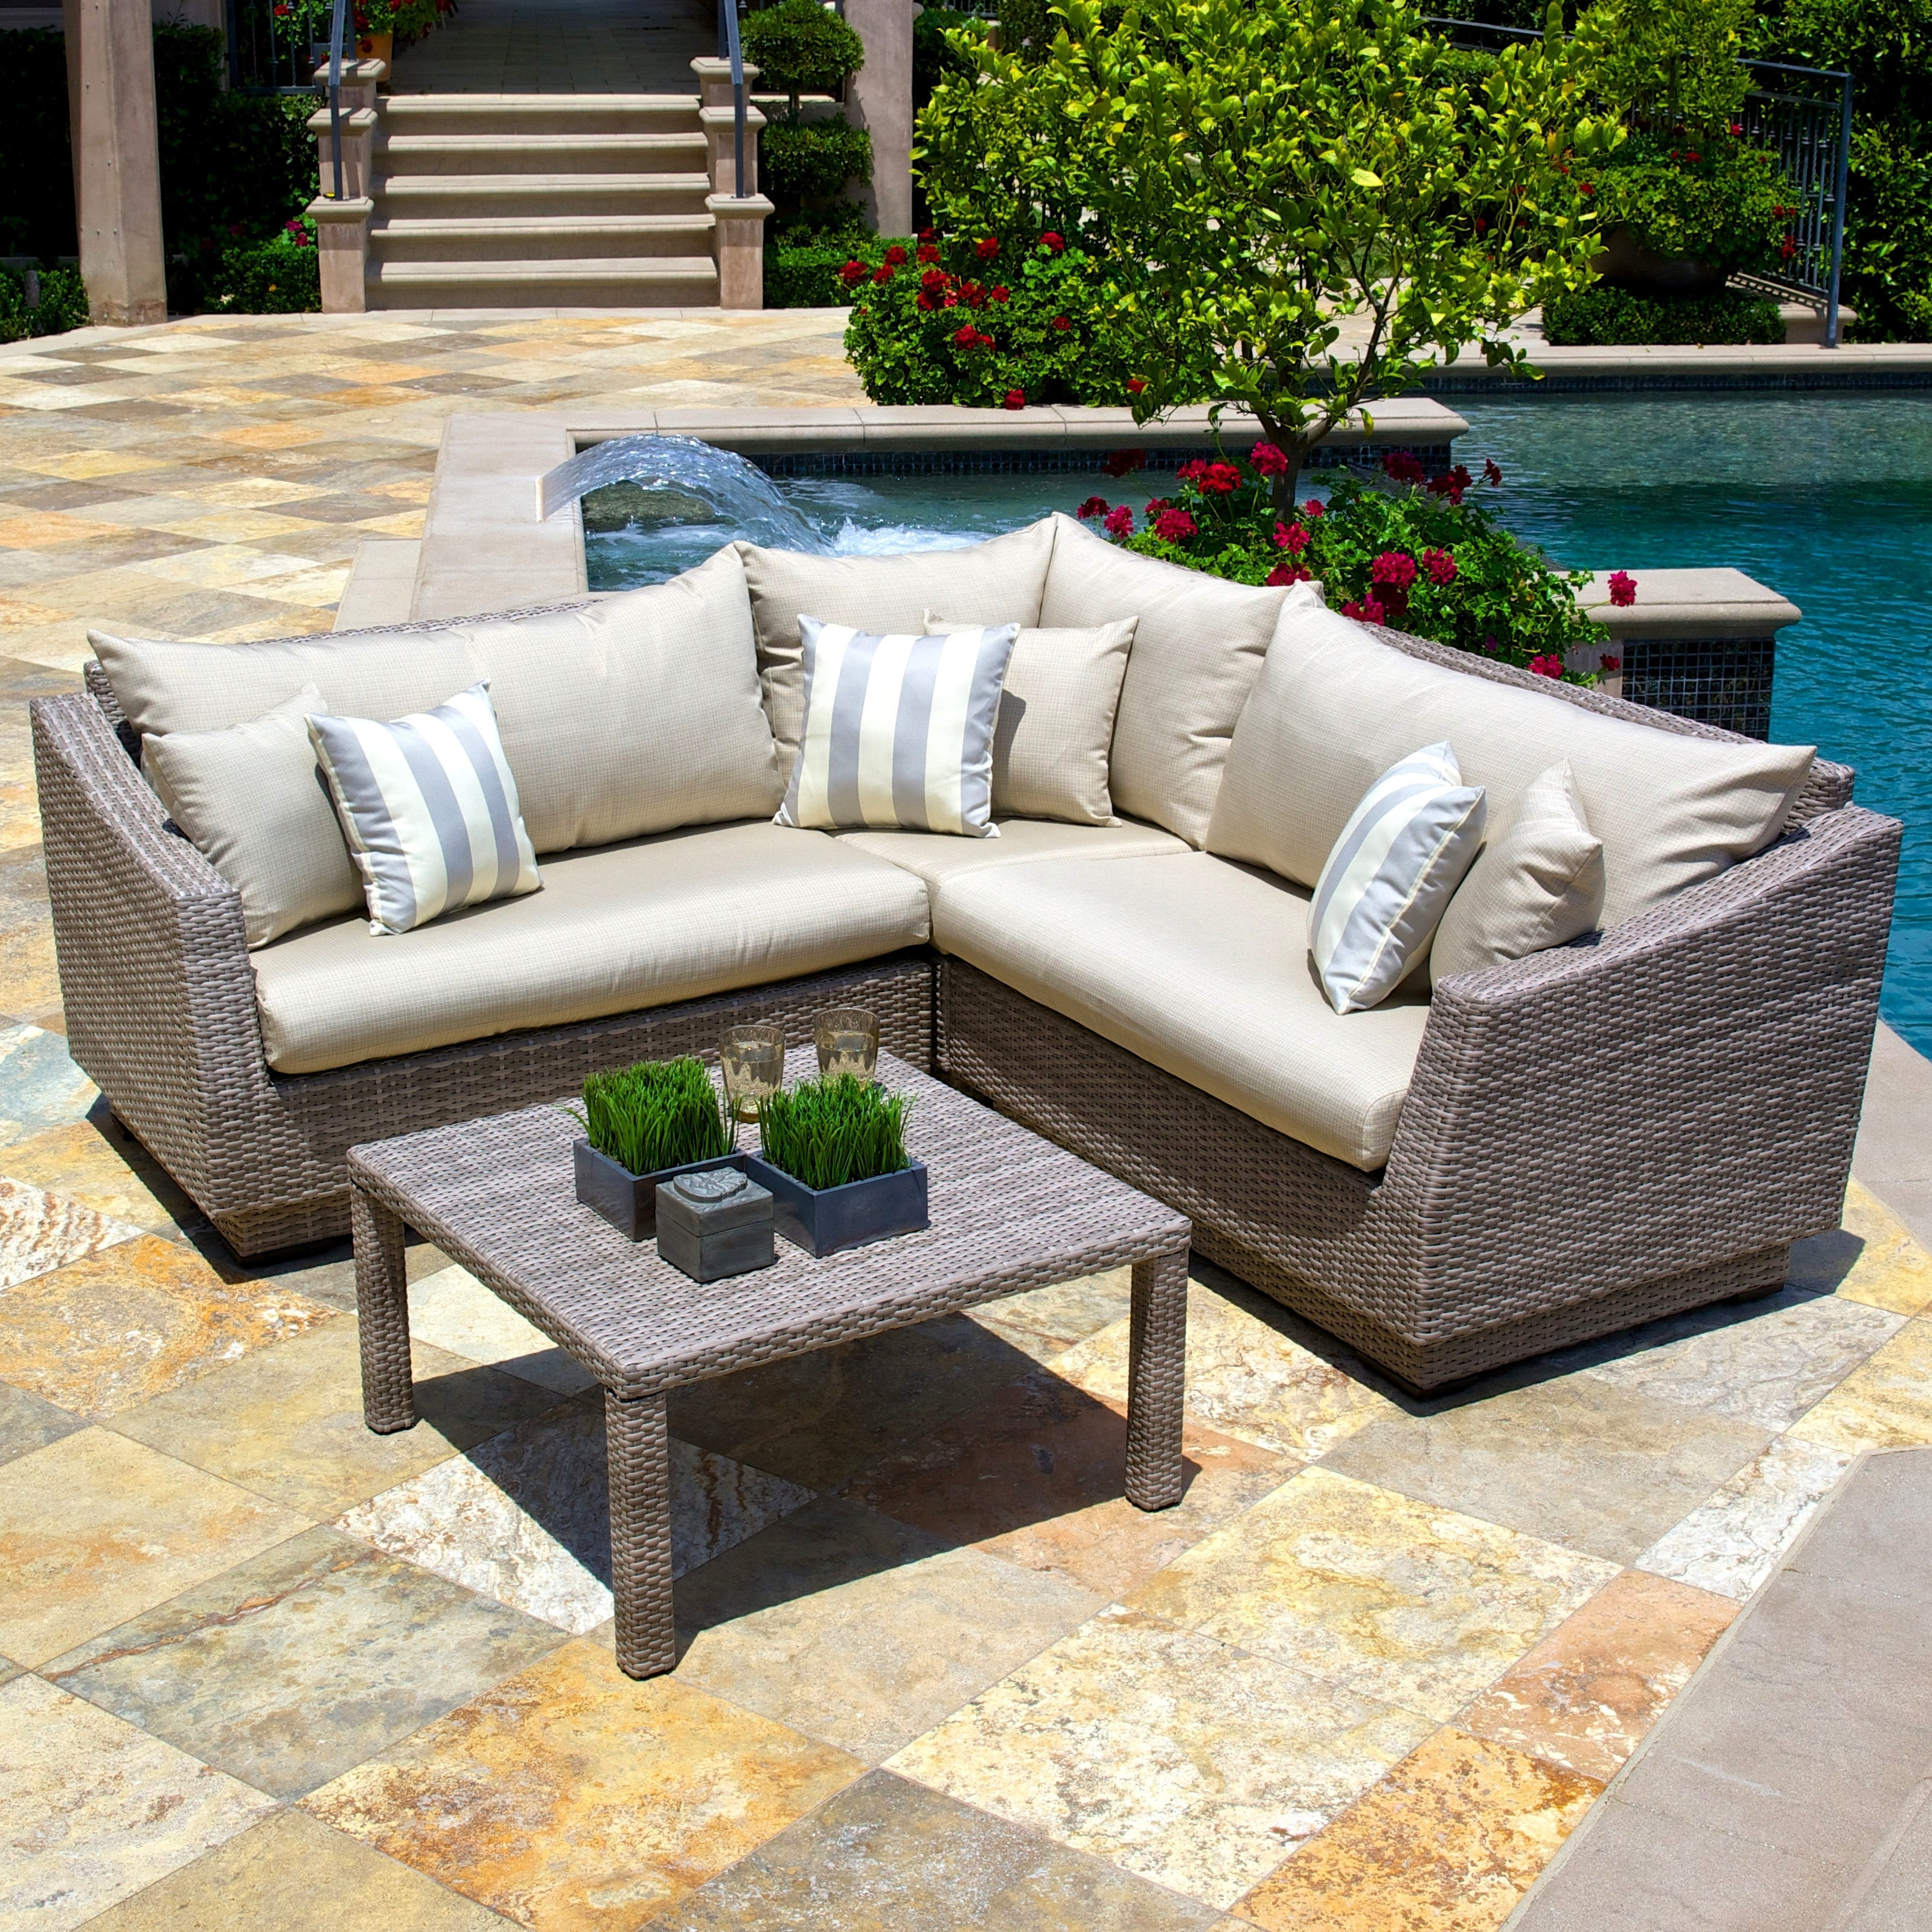 2018 25 Lovely Outdoor Furniture Cushions Overstock Design Of Kroger Pertaining To Rocking Chairs At Kroger (View 1 of 20)